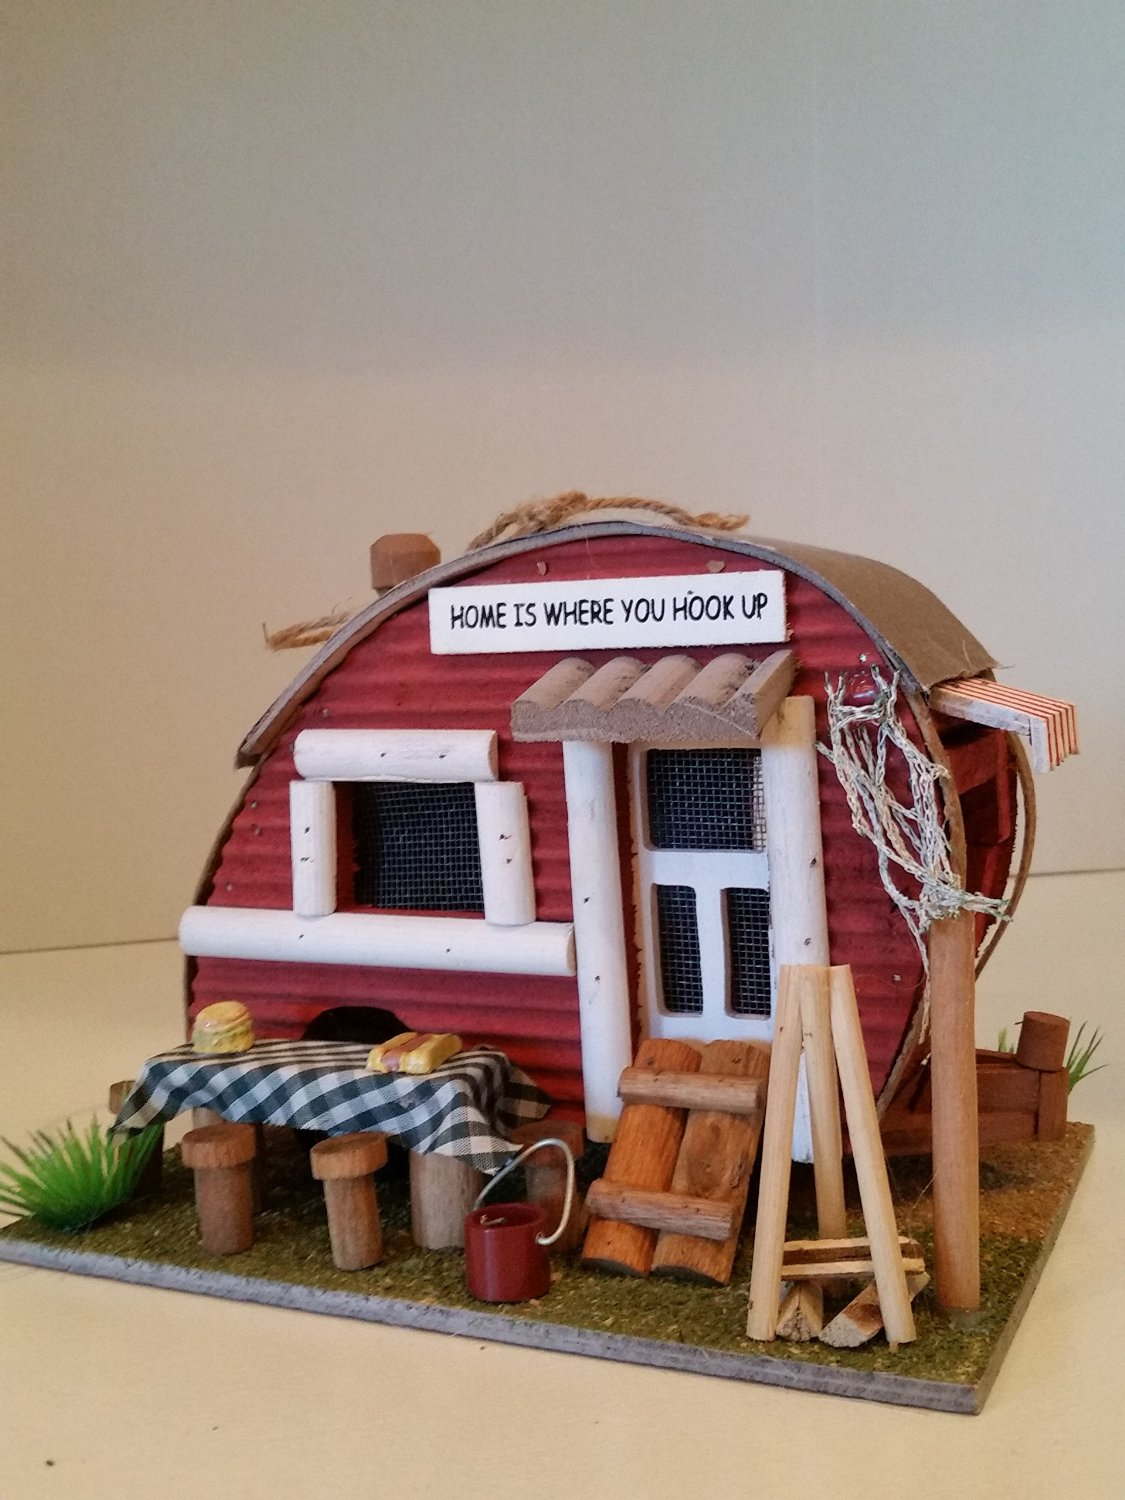 Backyard Camper Birdhouse has the look of a Backyard Camper! Create a comfy home with this cozy wood Birdhouse.